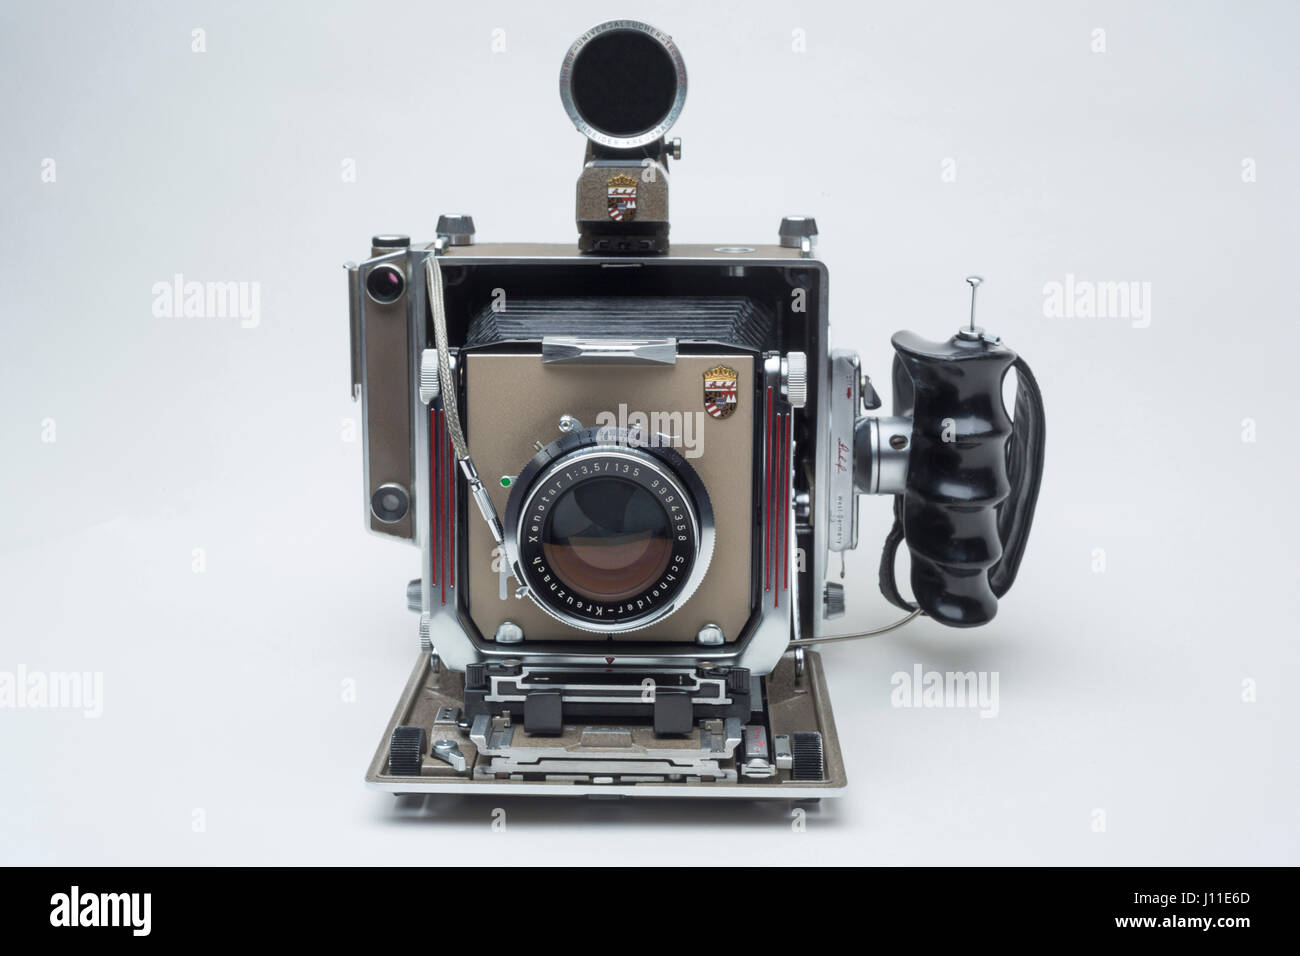 HISTORICAL 1960 LINHOF SUPER TECHNIKA IV LARGE FORMAT RANGE FINDER FILM VIEW CAMERA (©LINHOF GMBH 1956) - Stock Image